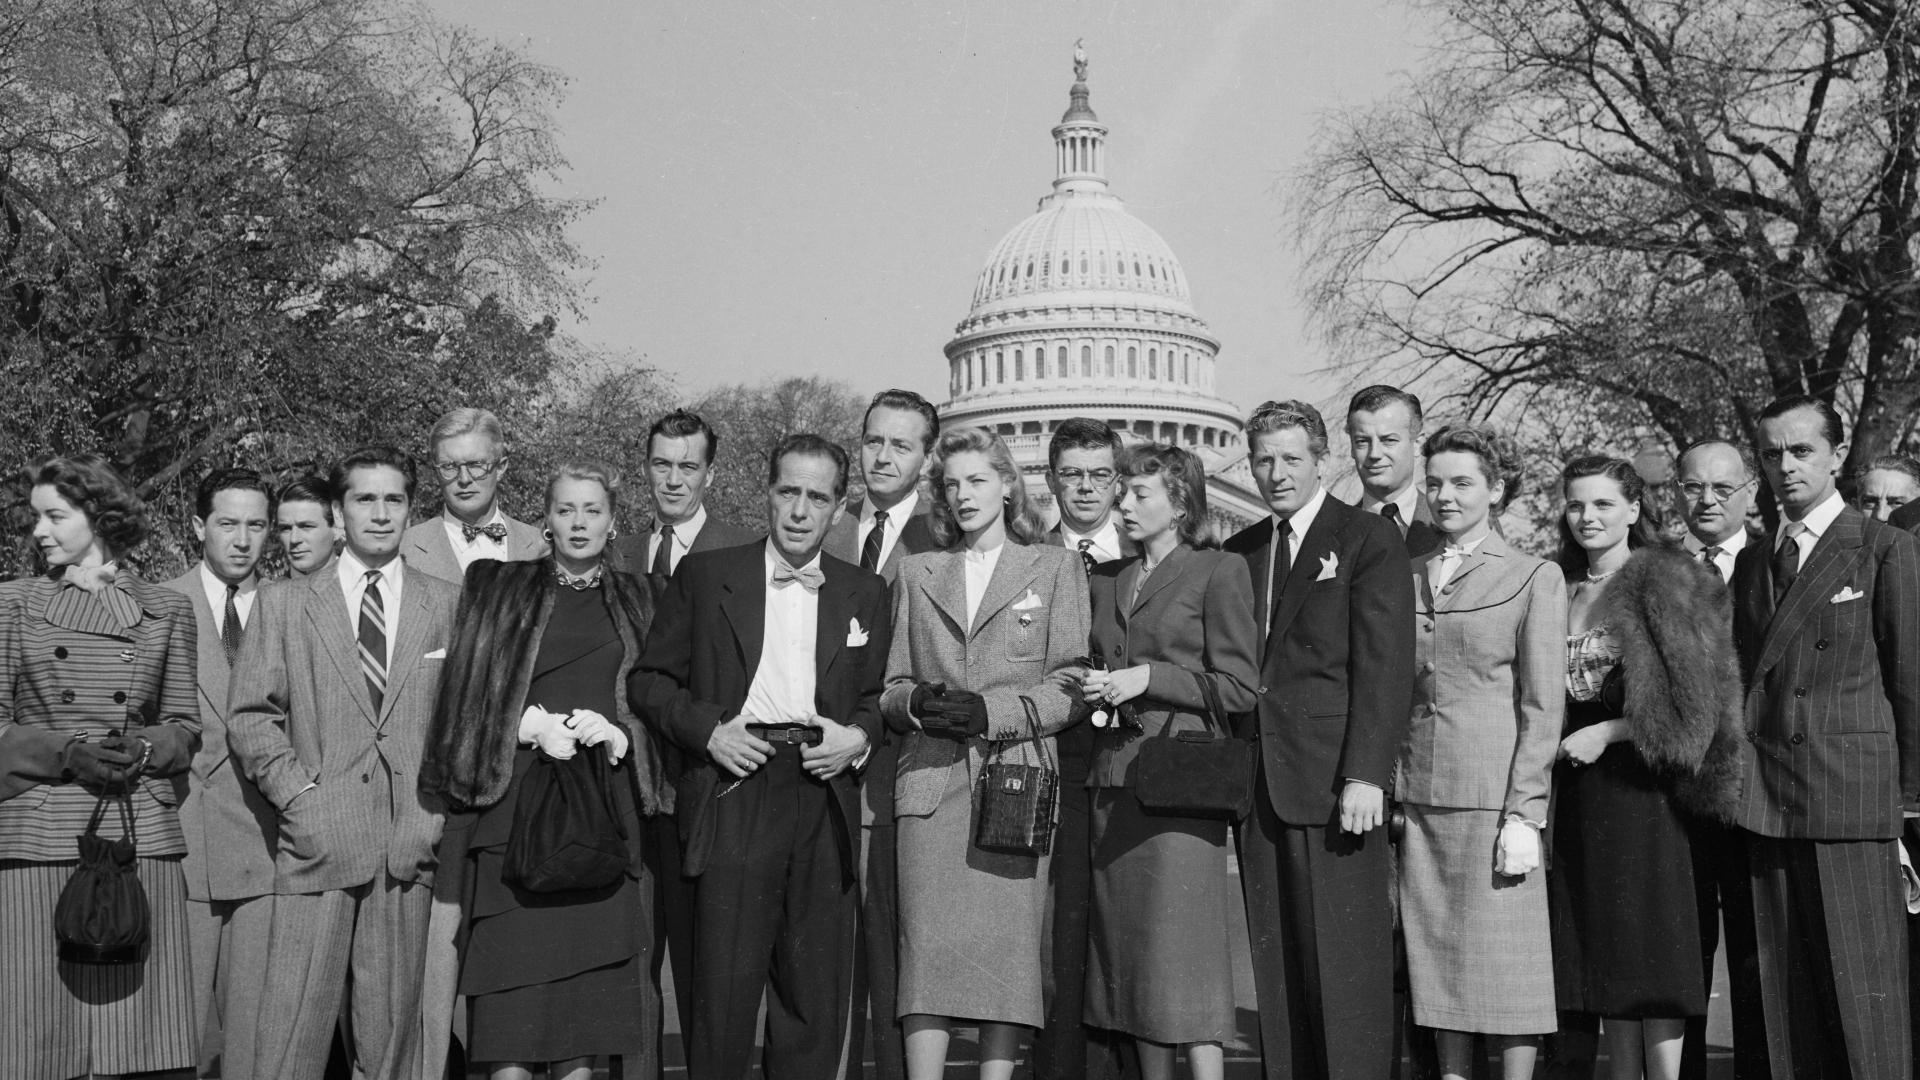 A group of Hollywood celebrities at the Capitol to protest the tactics of the House Un-American Activities Committee's investigation into alleged Hollywood communism. This photo includes actors like Humphrey Bogart and Lauren Bacall. (Credit: Bettmann Archive/Getty Images)